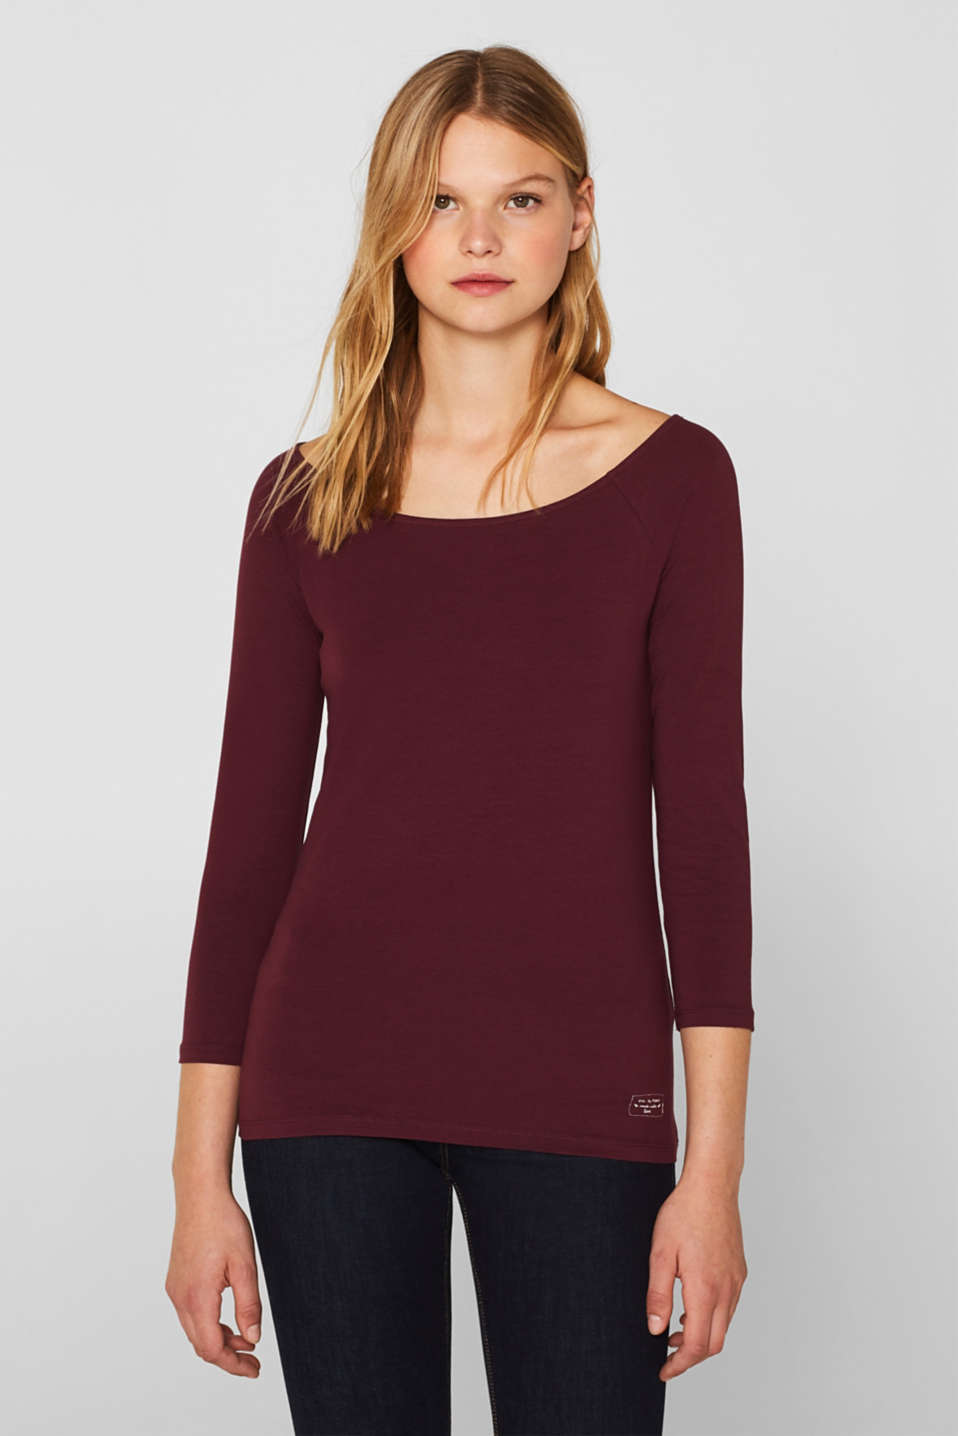 Stretch long sleeve top with organic cotton, BORDEAUX RED 4, detail image number 0